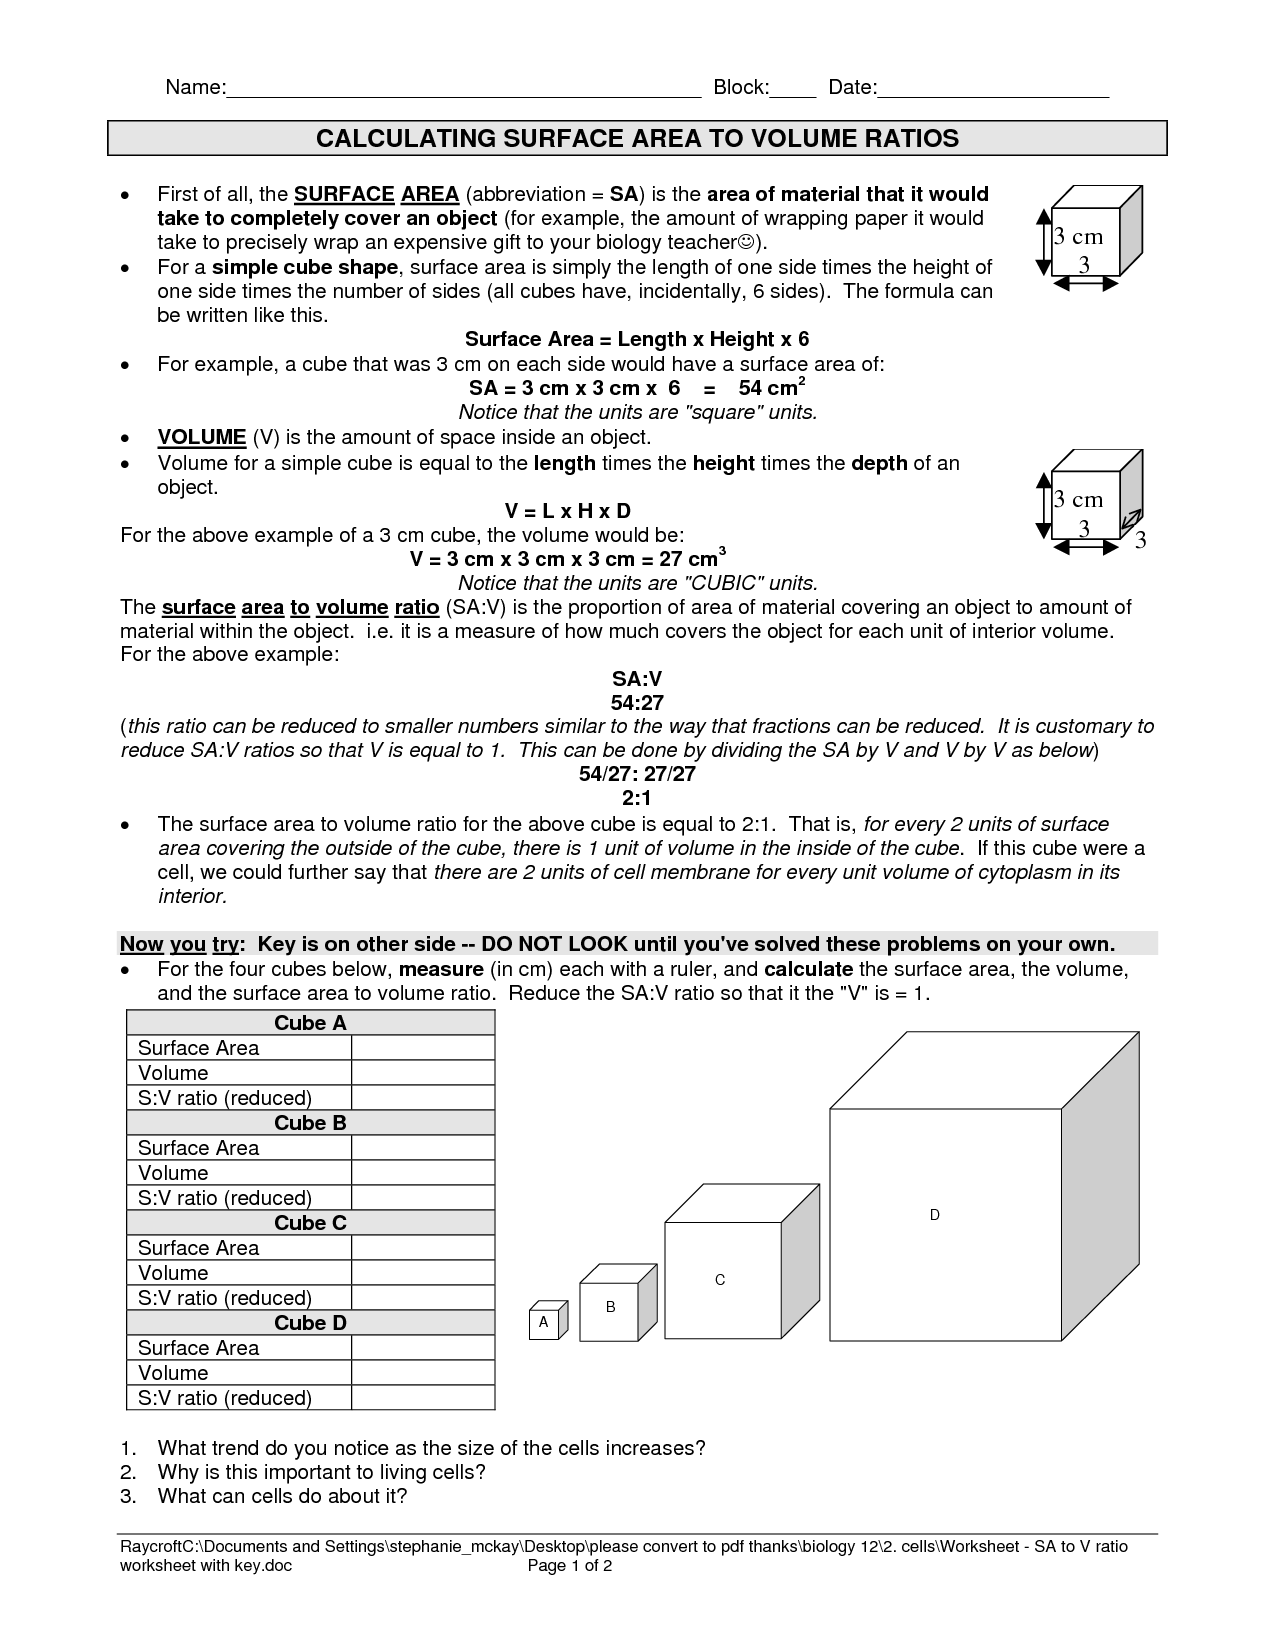 Worksheets The Virtual Cell Worksheet Answers surface area to volume ratio cells worksheet google search search